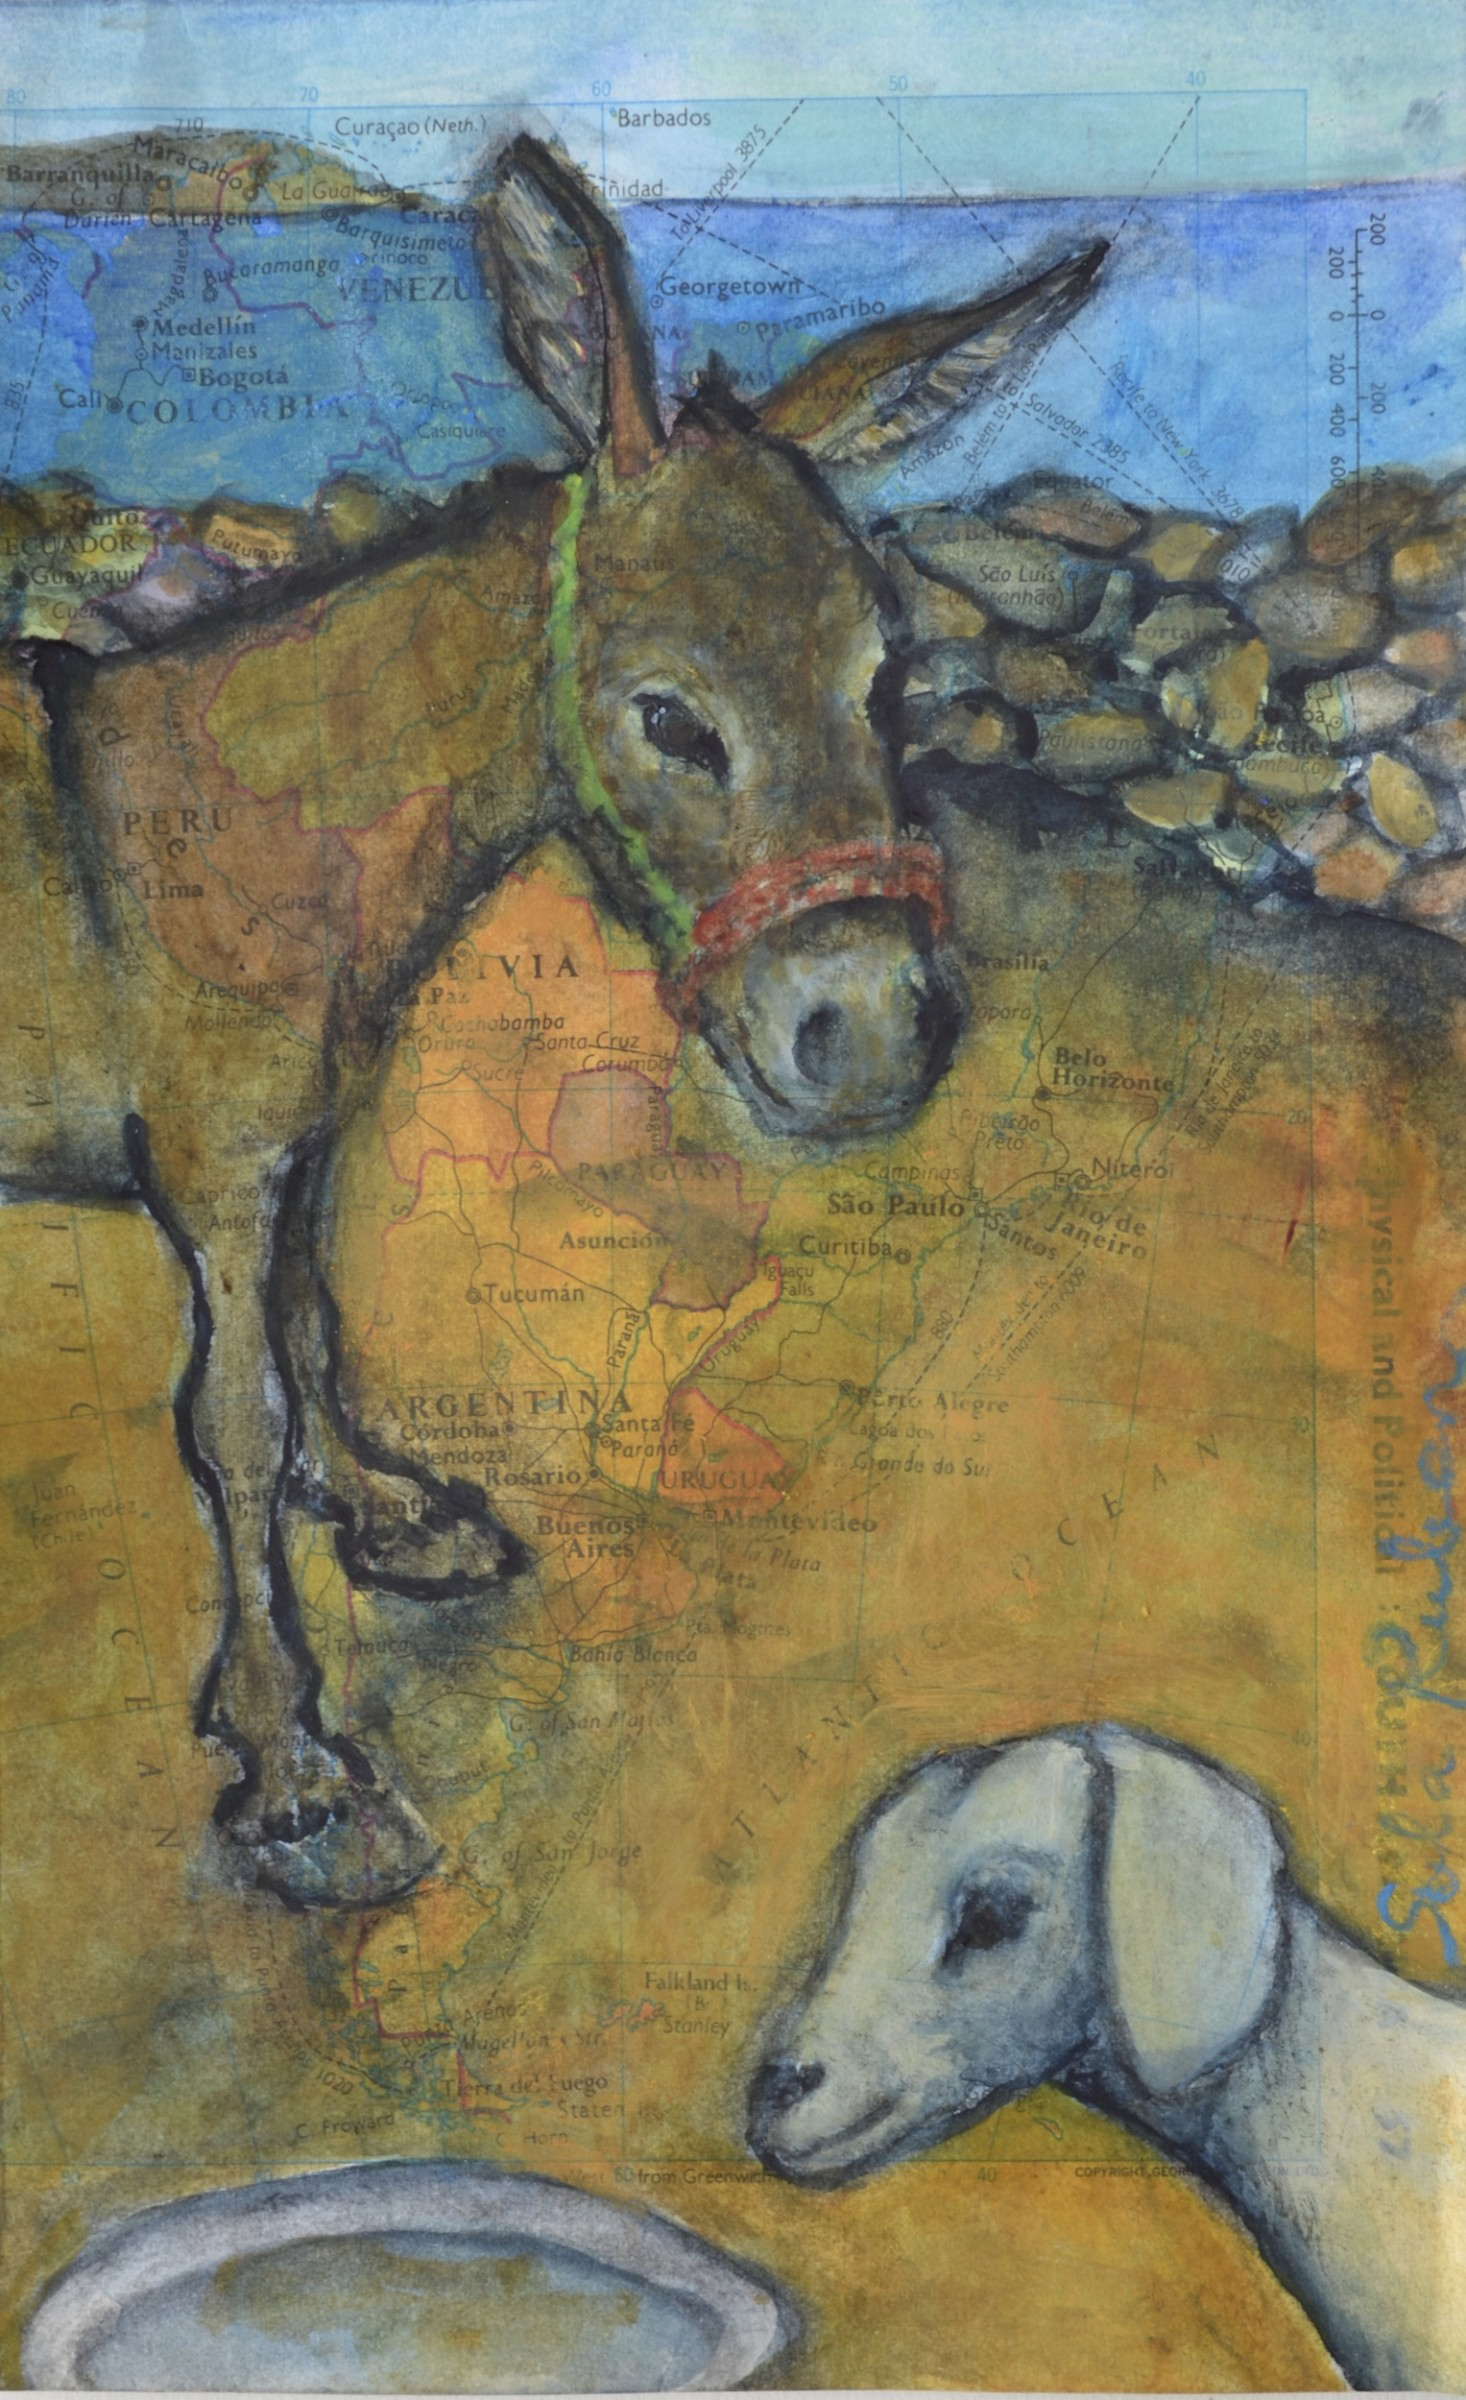 """<span class=""""link fancybox-details-link""""><a href=""""/artists/212-sula-rubens/works/12310-sula-rubens-donkey-with-a-young-goat/"""">View Detail Page</a></span><div class=""""artist""""><span class=""""artist""""><strong>Sula Rubens</strong></span></div><div class=""""title""""><em>Donkey with a Young Goat</em></div><div class=""""medium"""">watercolour on paper (map)</div><div class=""""dimensions"""">Frame: 37 x 29 cm<br /> Artwork: 19 x 11.7 cm</div><div class=""""price"""">£295.00</div>"""